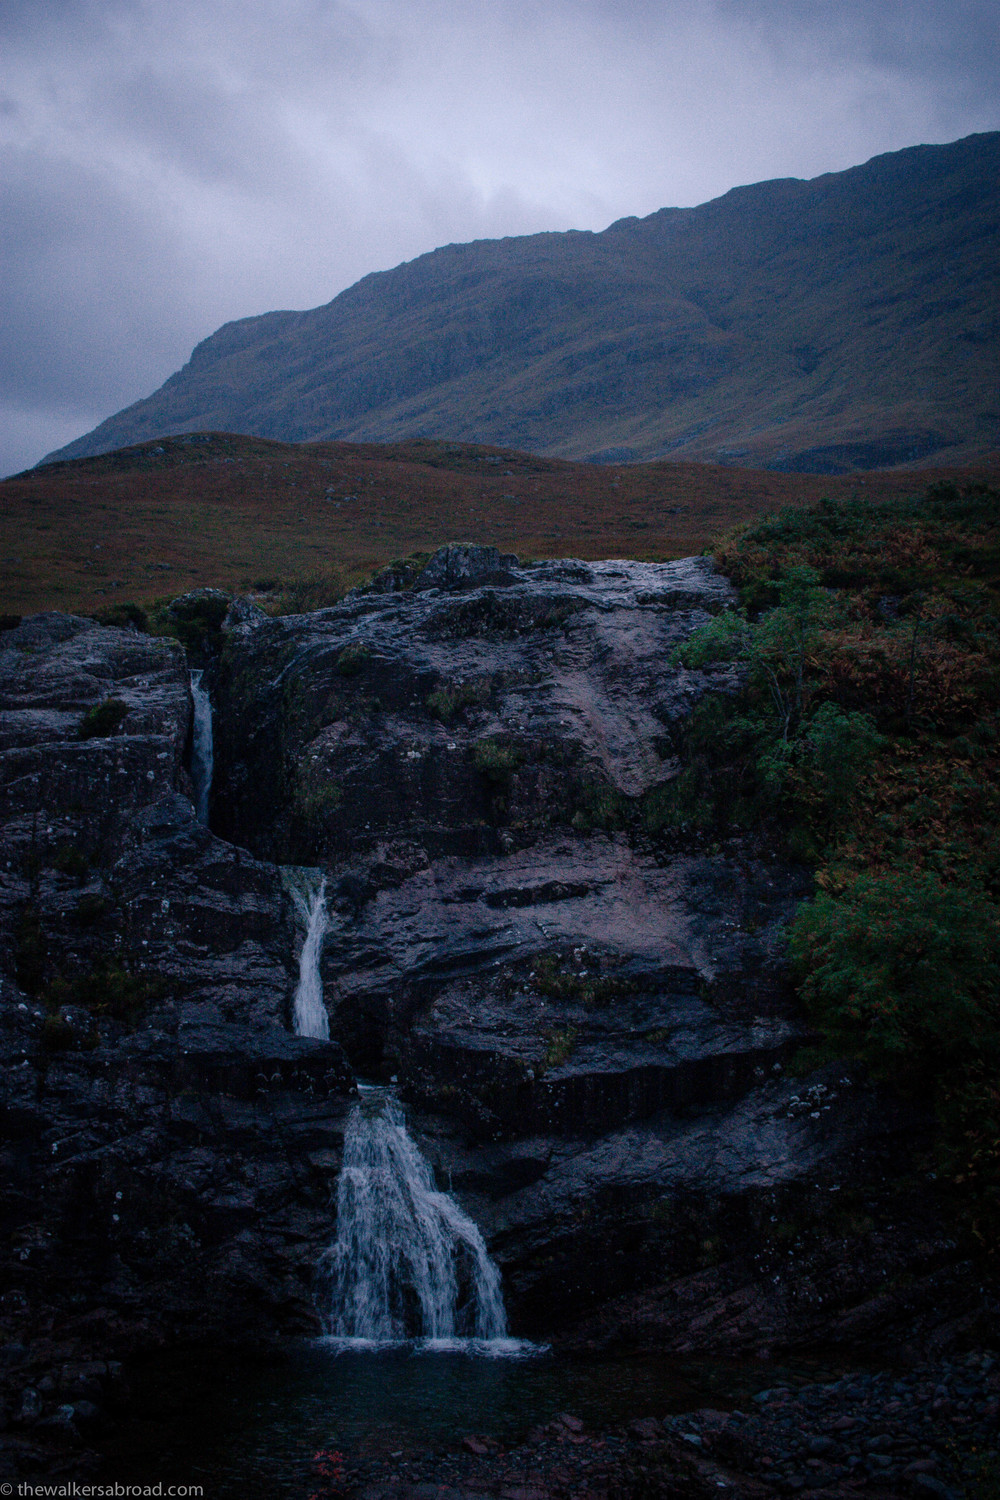 One of the many waterfalls in Glen Coe.